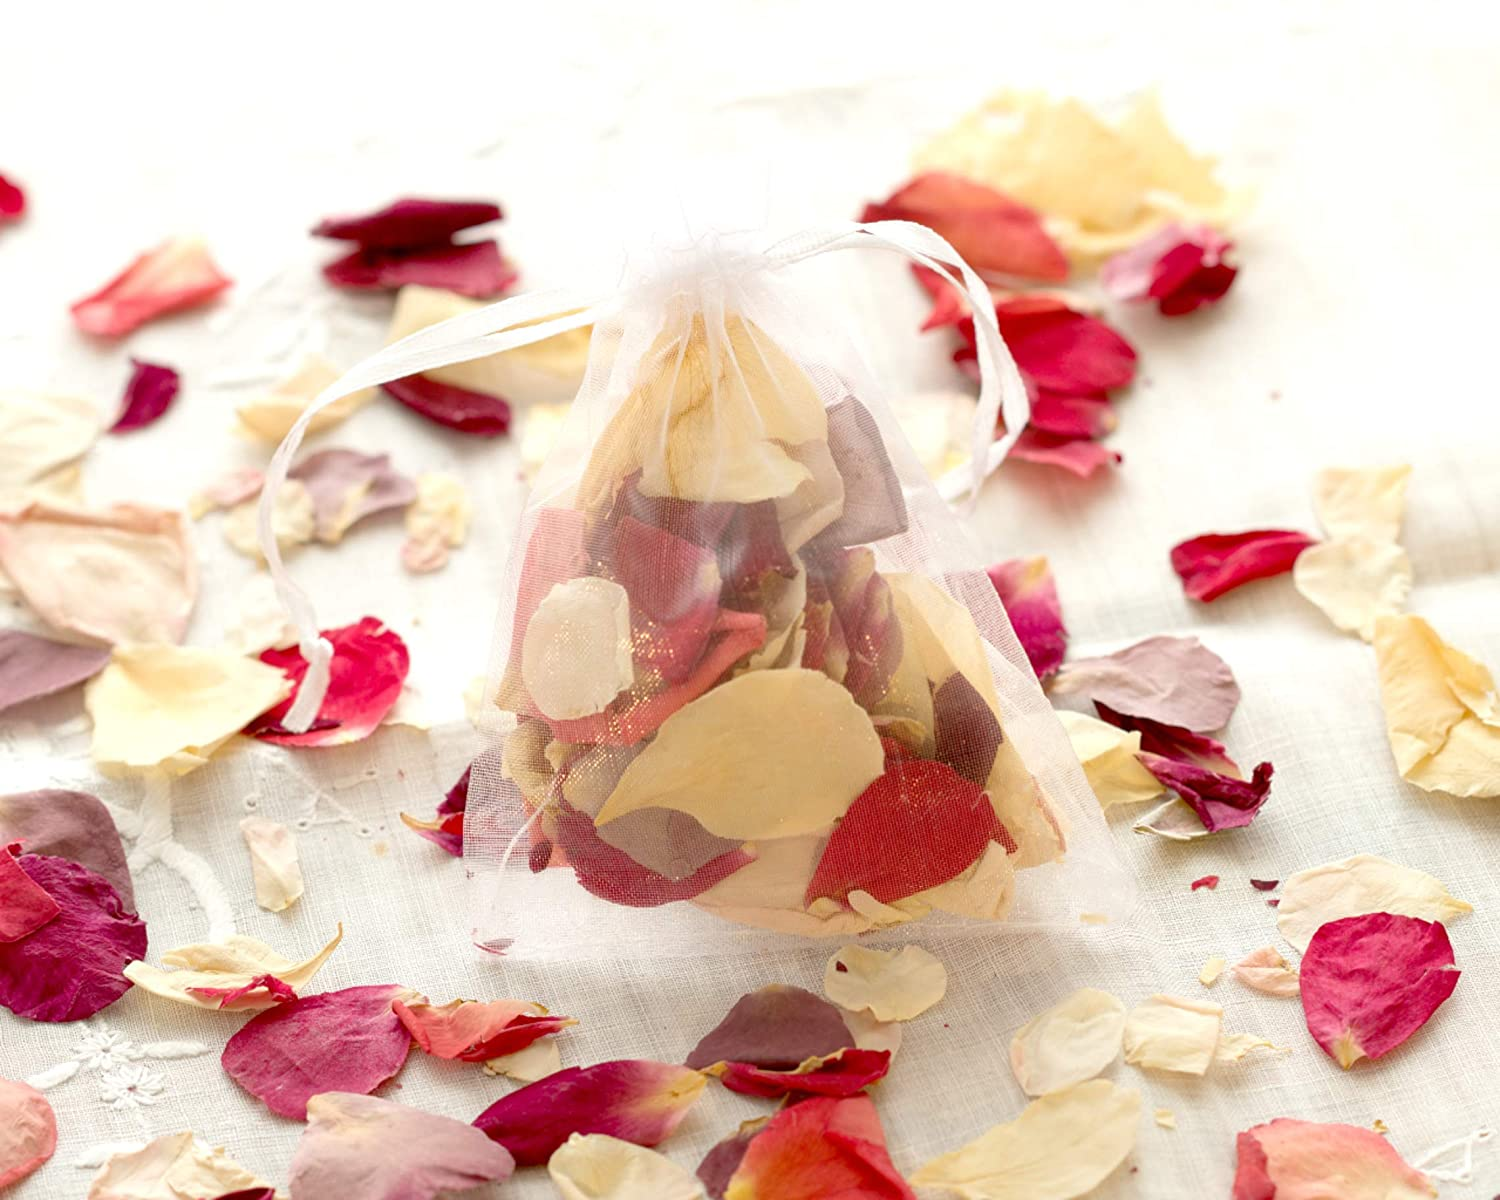 20 MINI WEDDING RED & IVORY ROSE PETAL BIODEGRADABLE CONFETTI HAND-FILLED ORGANZA BAGS 8X6 - Ideal For Weddings & Flower Girls - UK FLORIST The Flower Studio